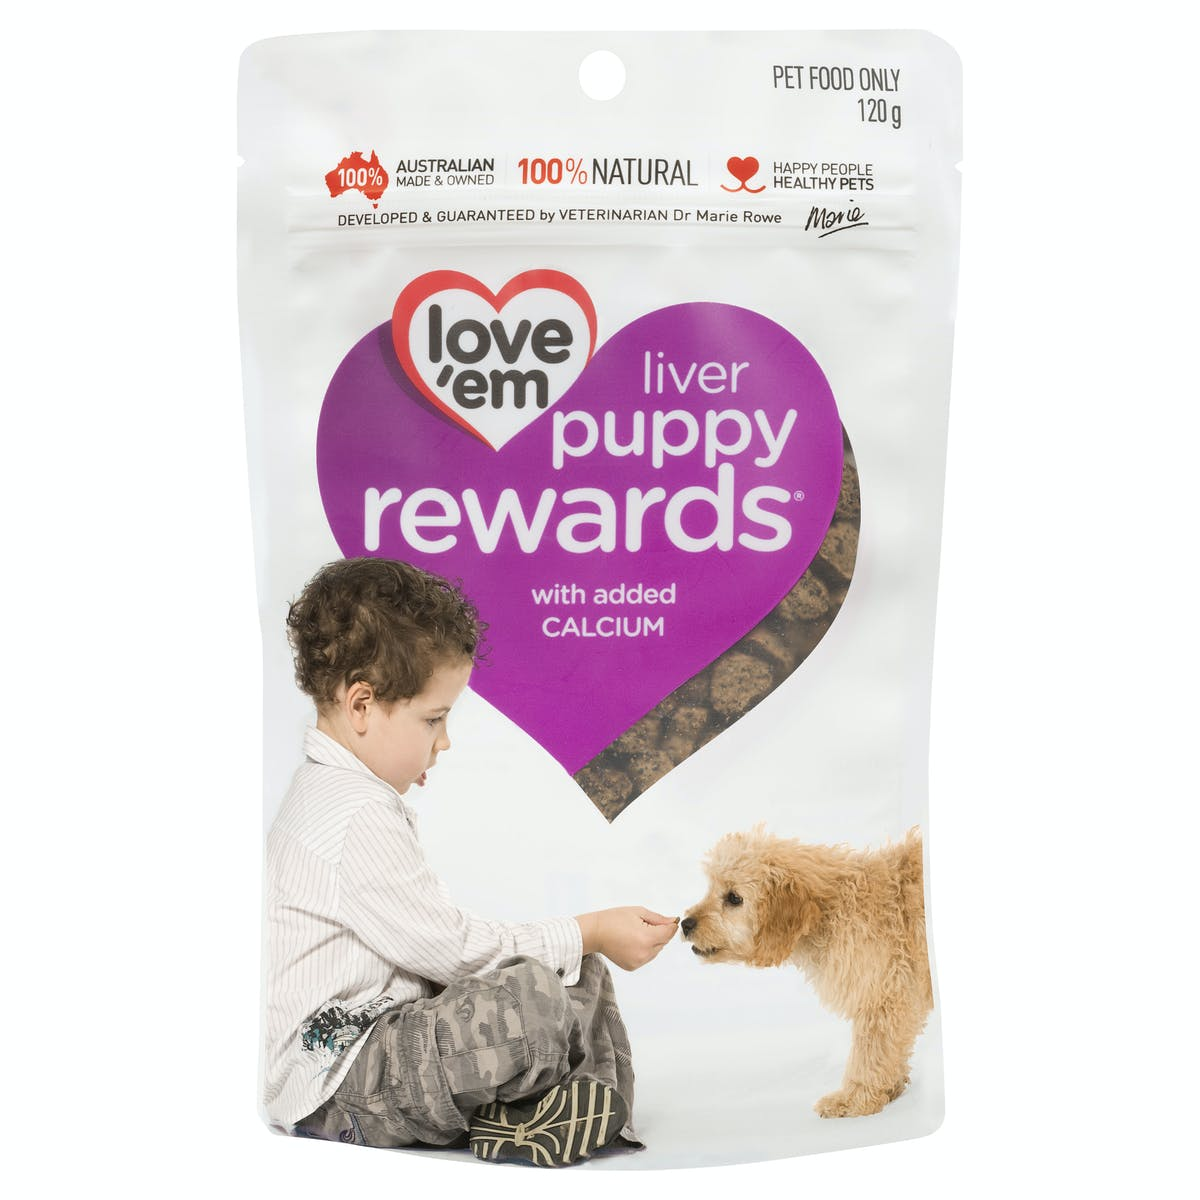 Love'em | liver puppy rewards with added calcium | Train dog | Front of pack